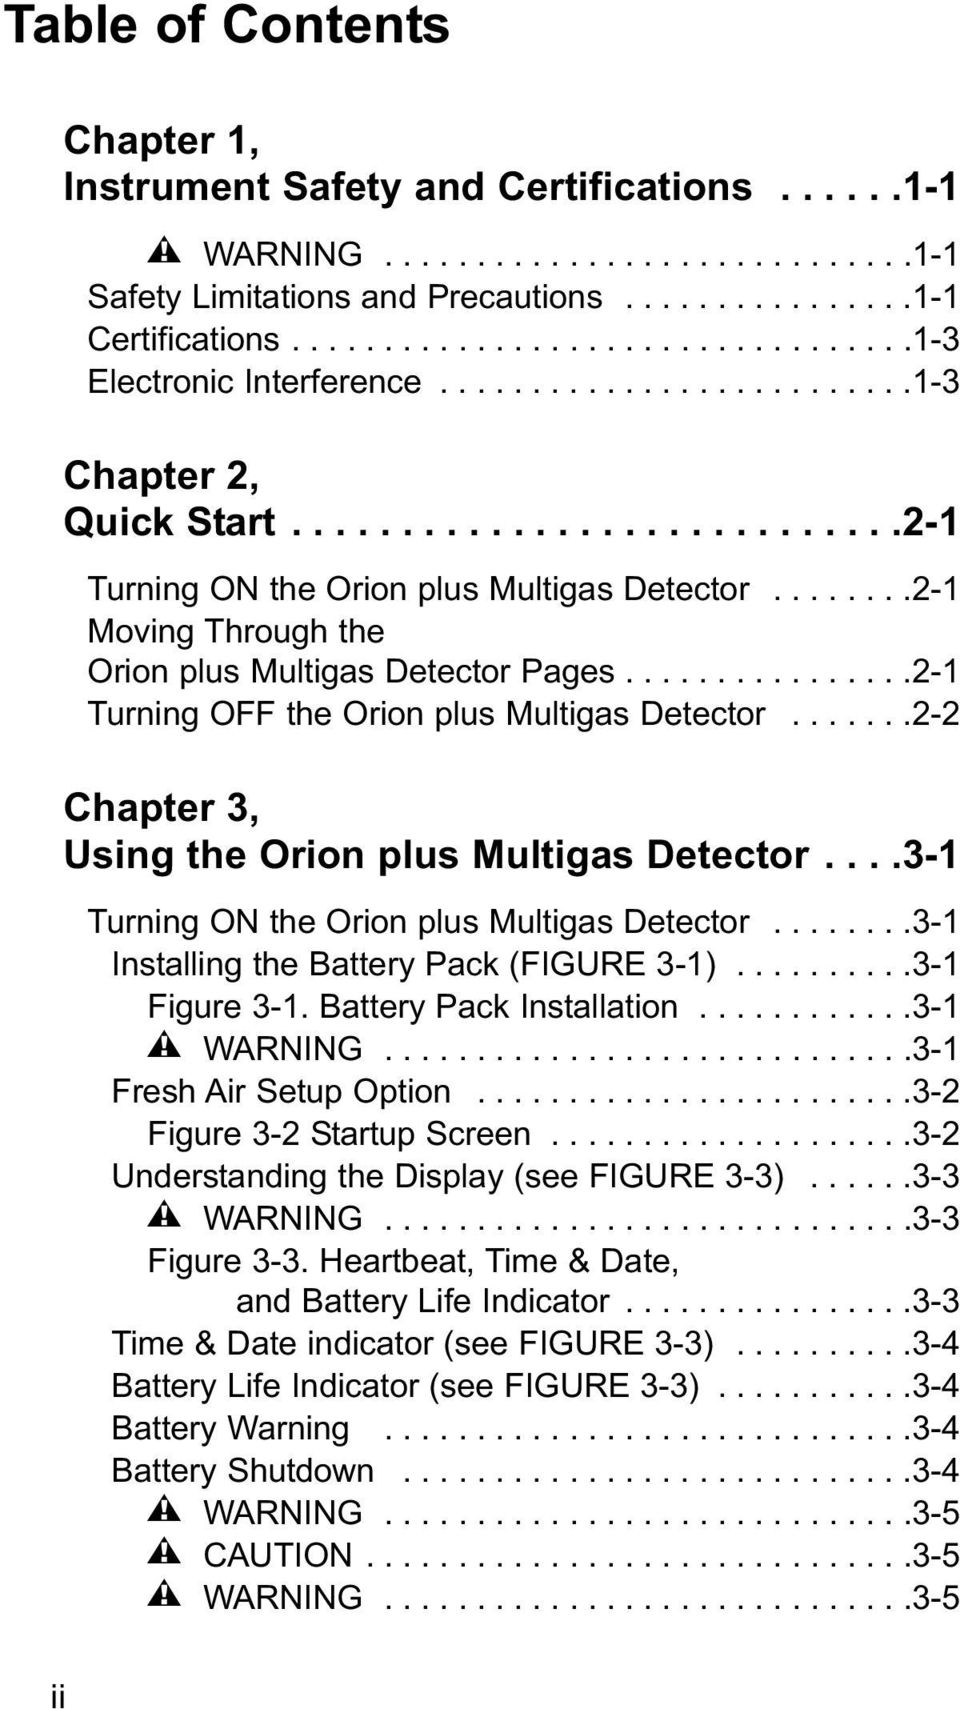 .......2-1 Moving Through the Orion plus Multigas Detector Pages................2-1 Turning OFF the Orion plus Multigas Detector.......2-2 Chapter 3, Using the Orion plus Multigas Detector.